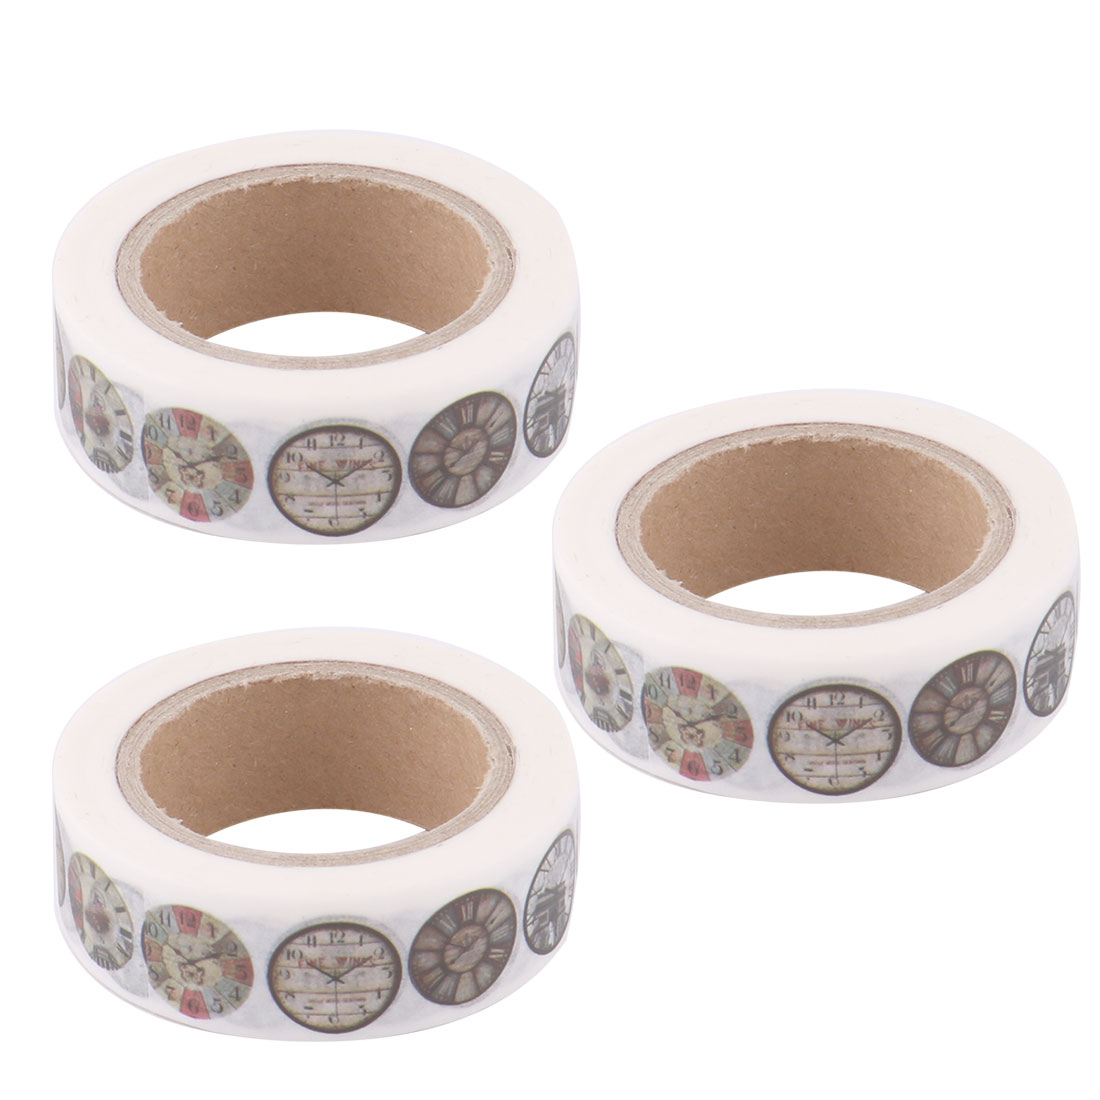 Washi Paper Watch Print Gift Box Packing Sticky Label Tape Roll 1.5cm x 10M 3pcs